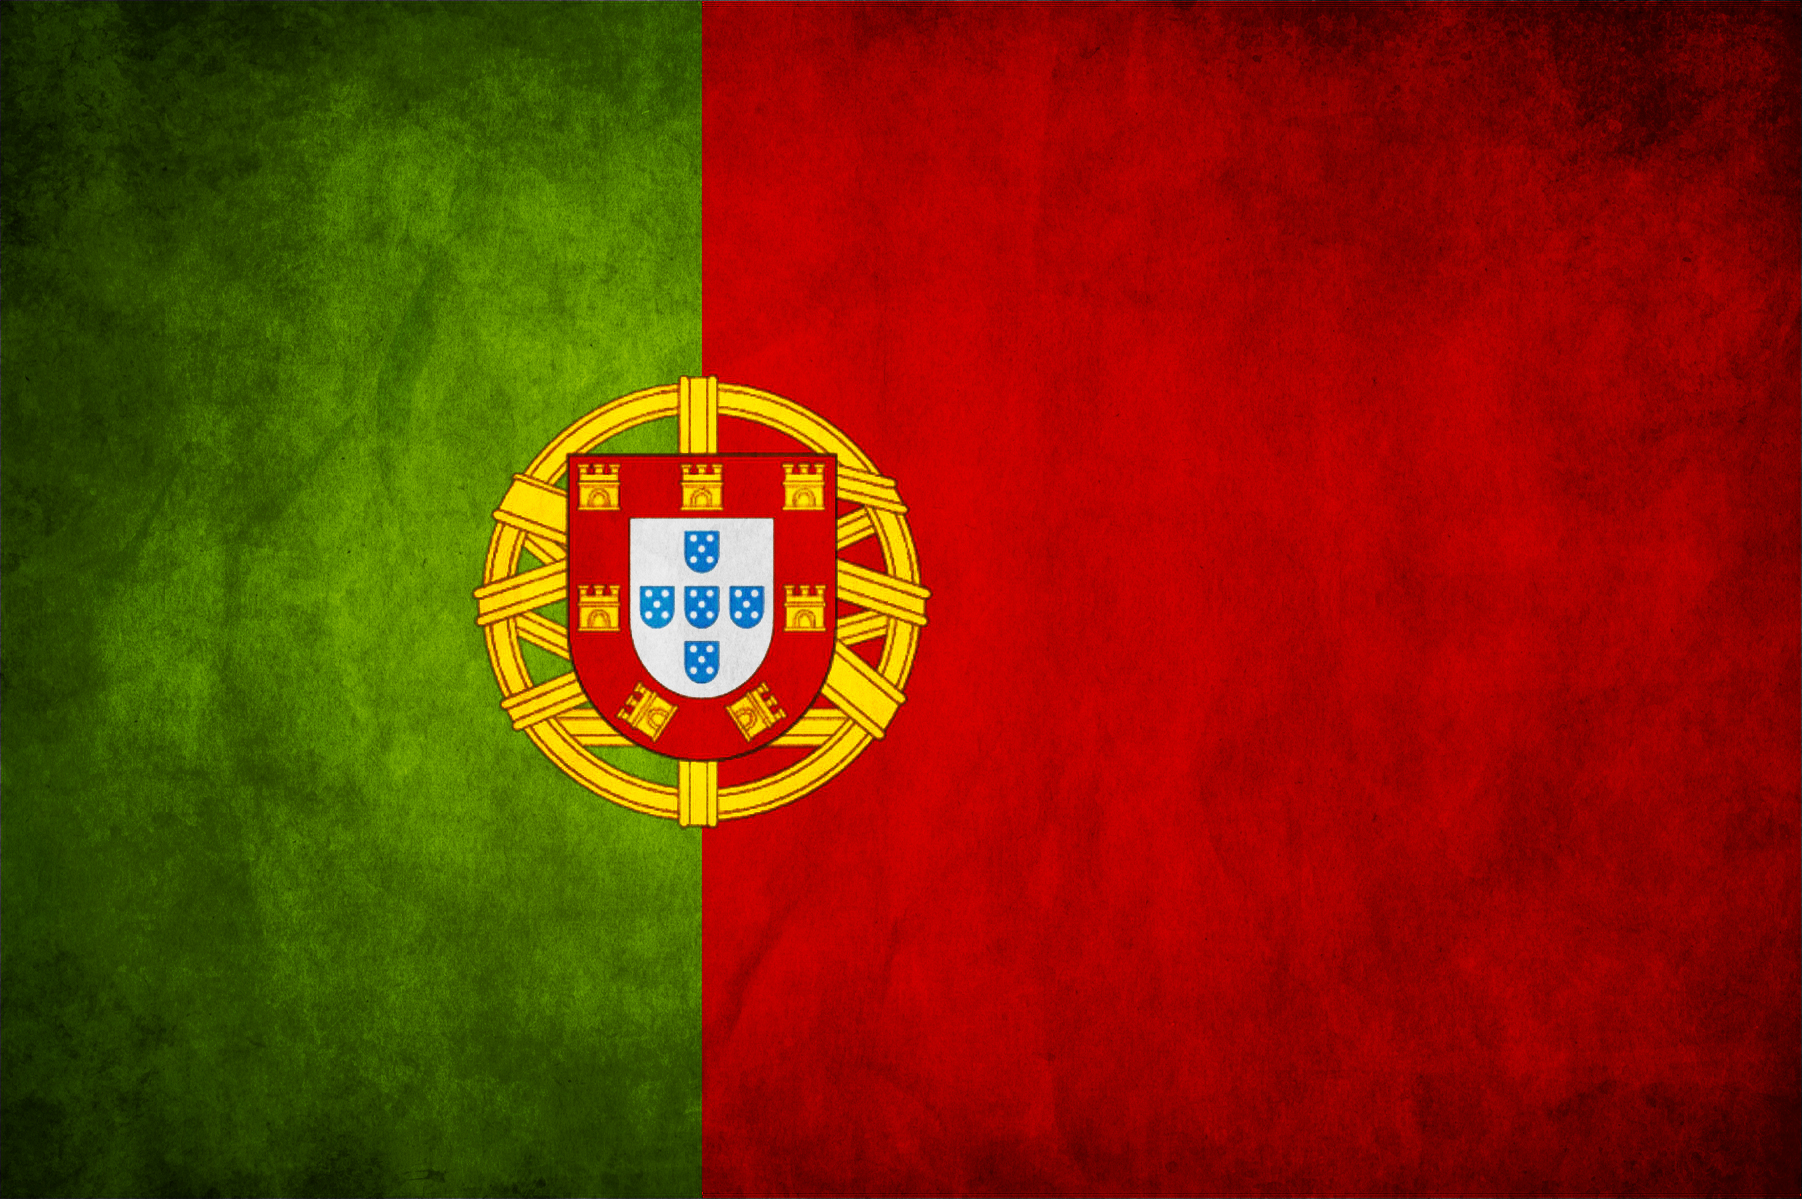 Flag Of Portugal Wallpaper and Background Image 1802x1199 ID 1802x1199